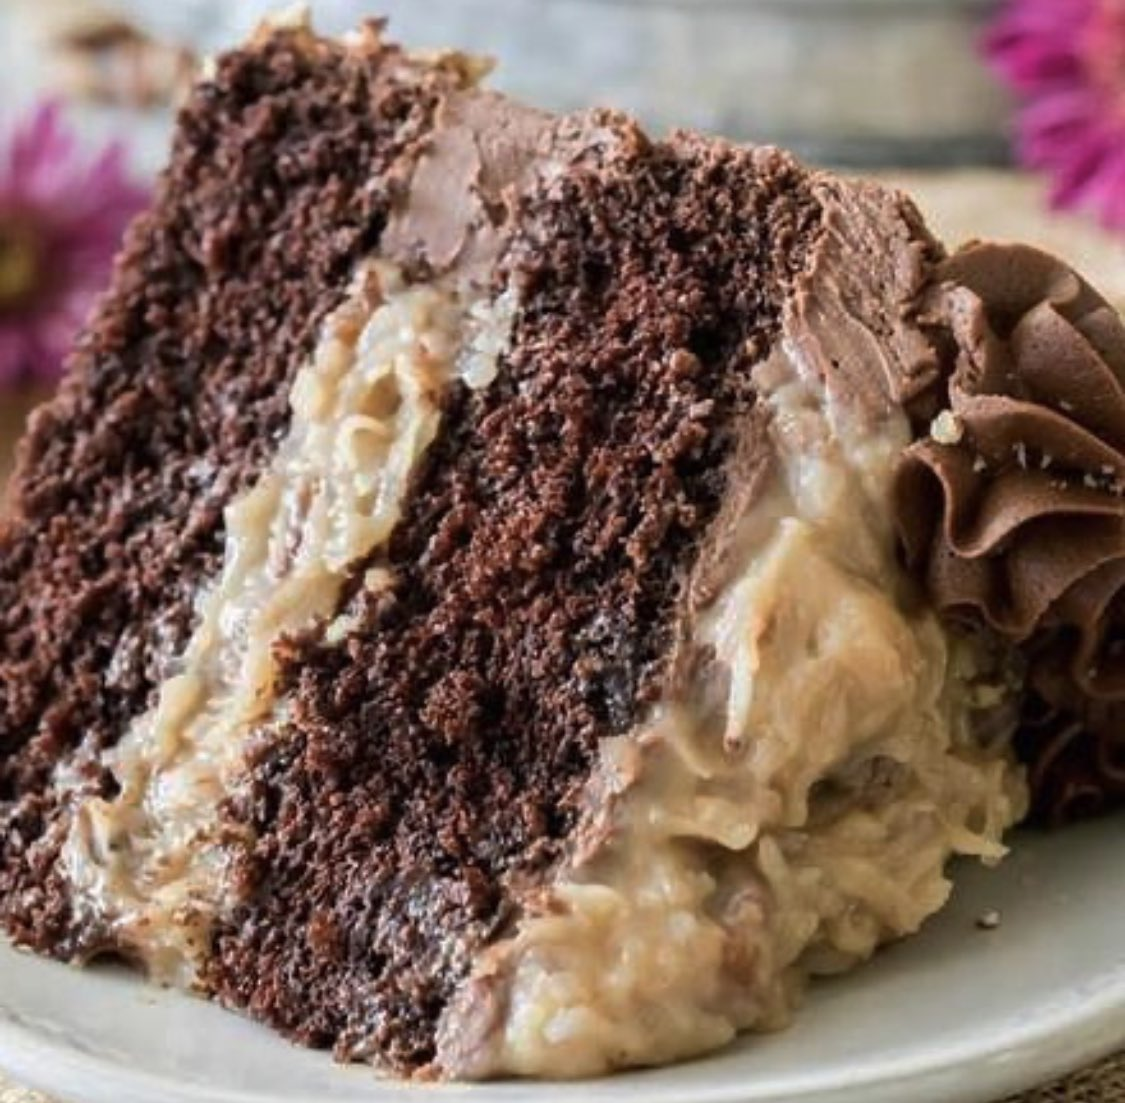 This cloudy weather calls for a slice of German Chocolate Cake. 🍰 Who's calling @UberEats? #DallasWestEnd #supportlocal #food